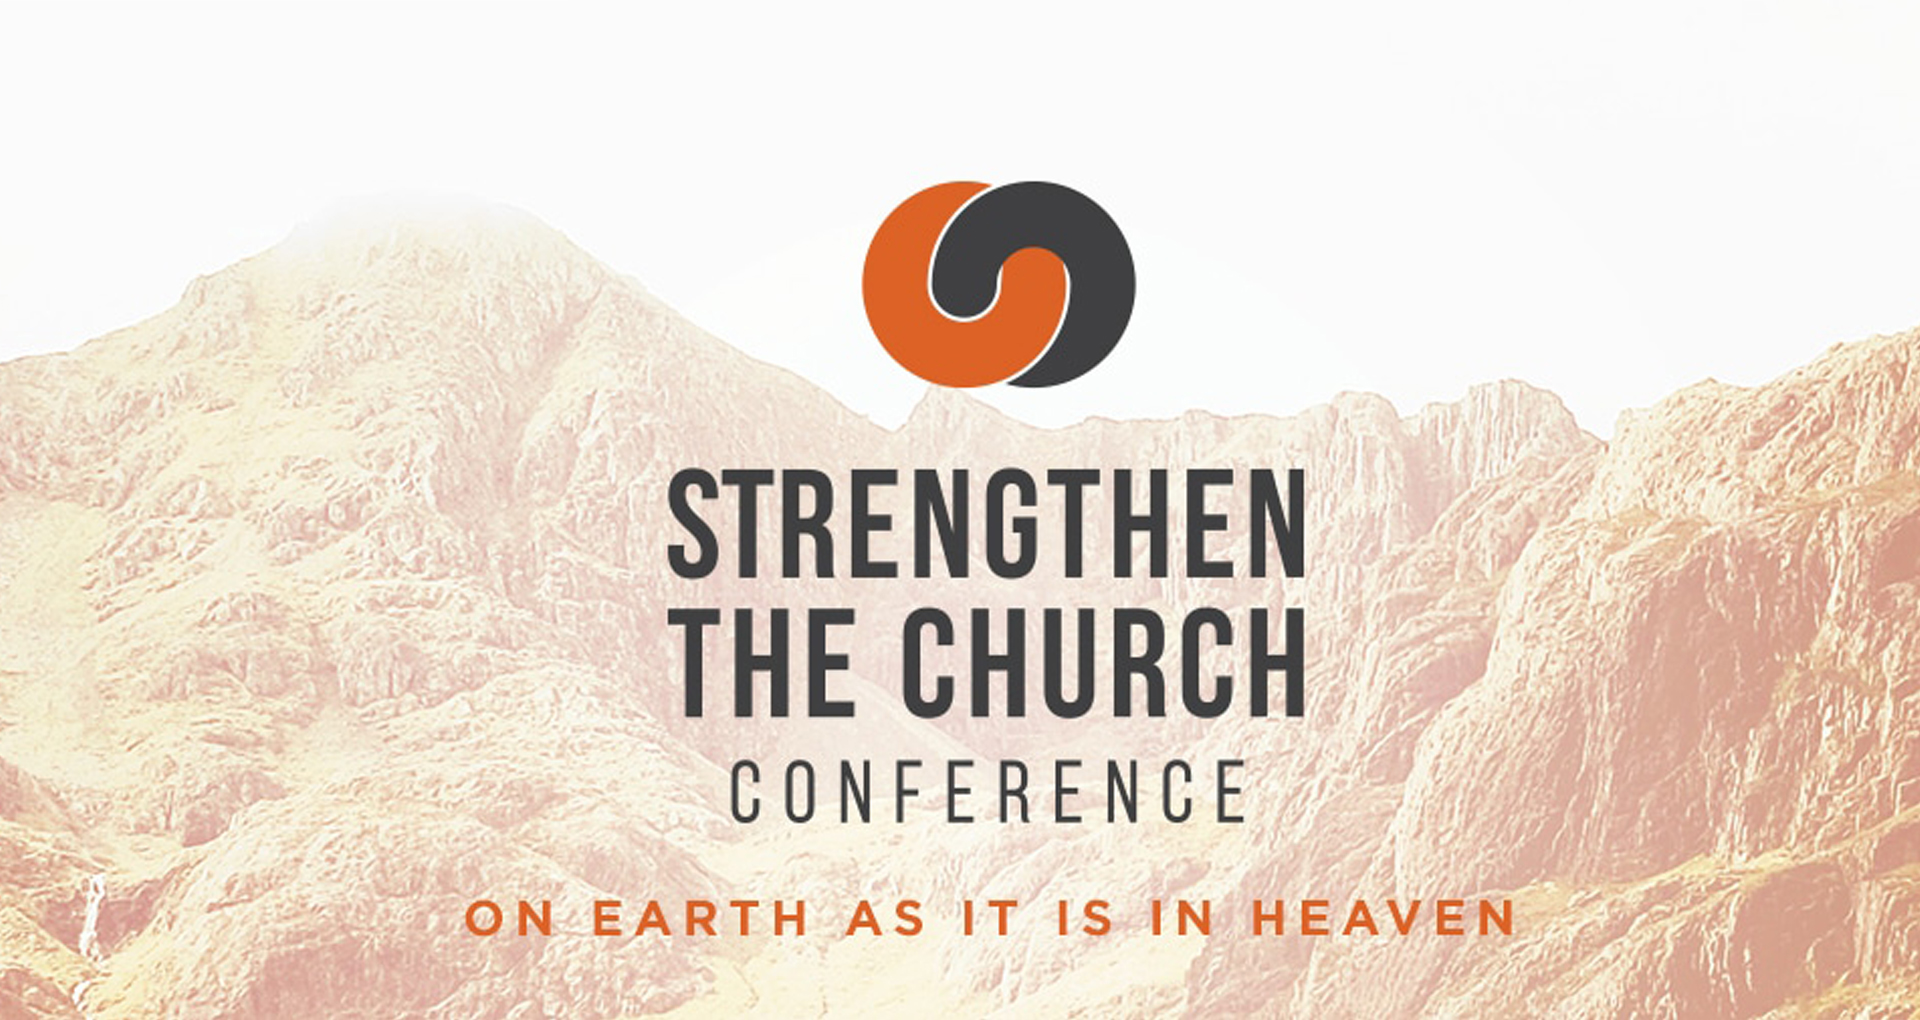 Strengthen the Church Conference image